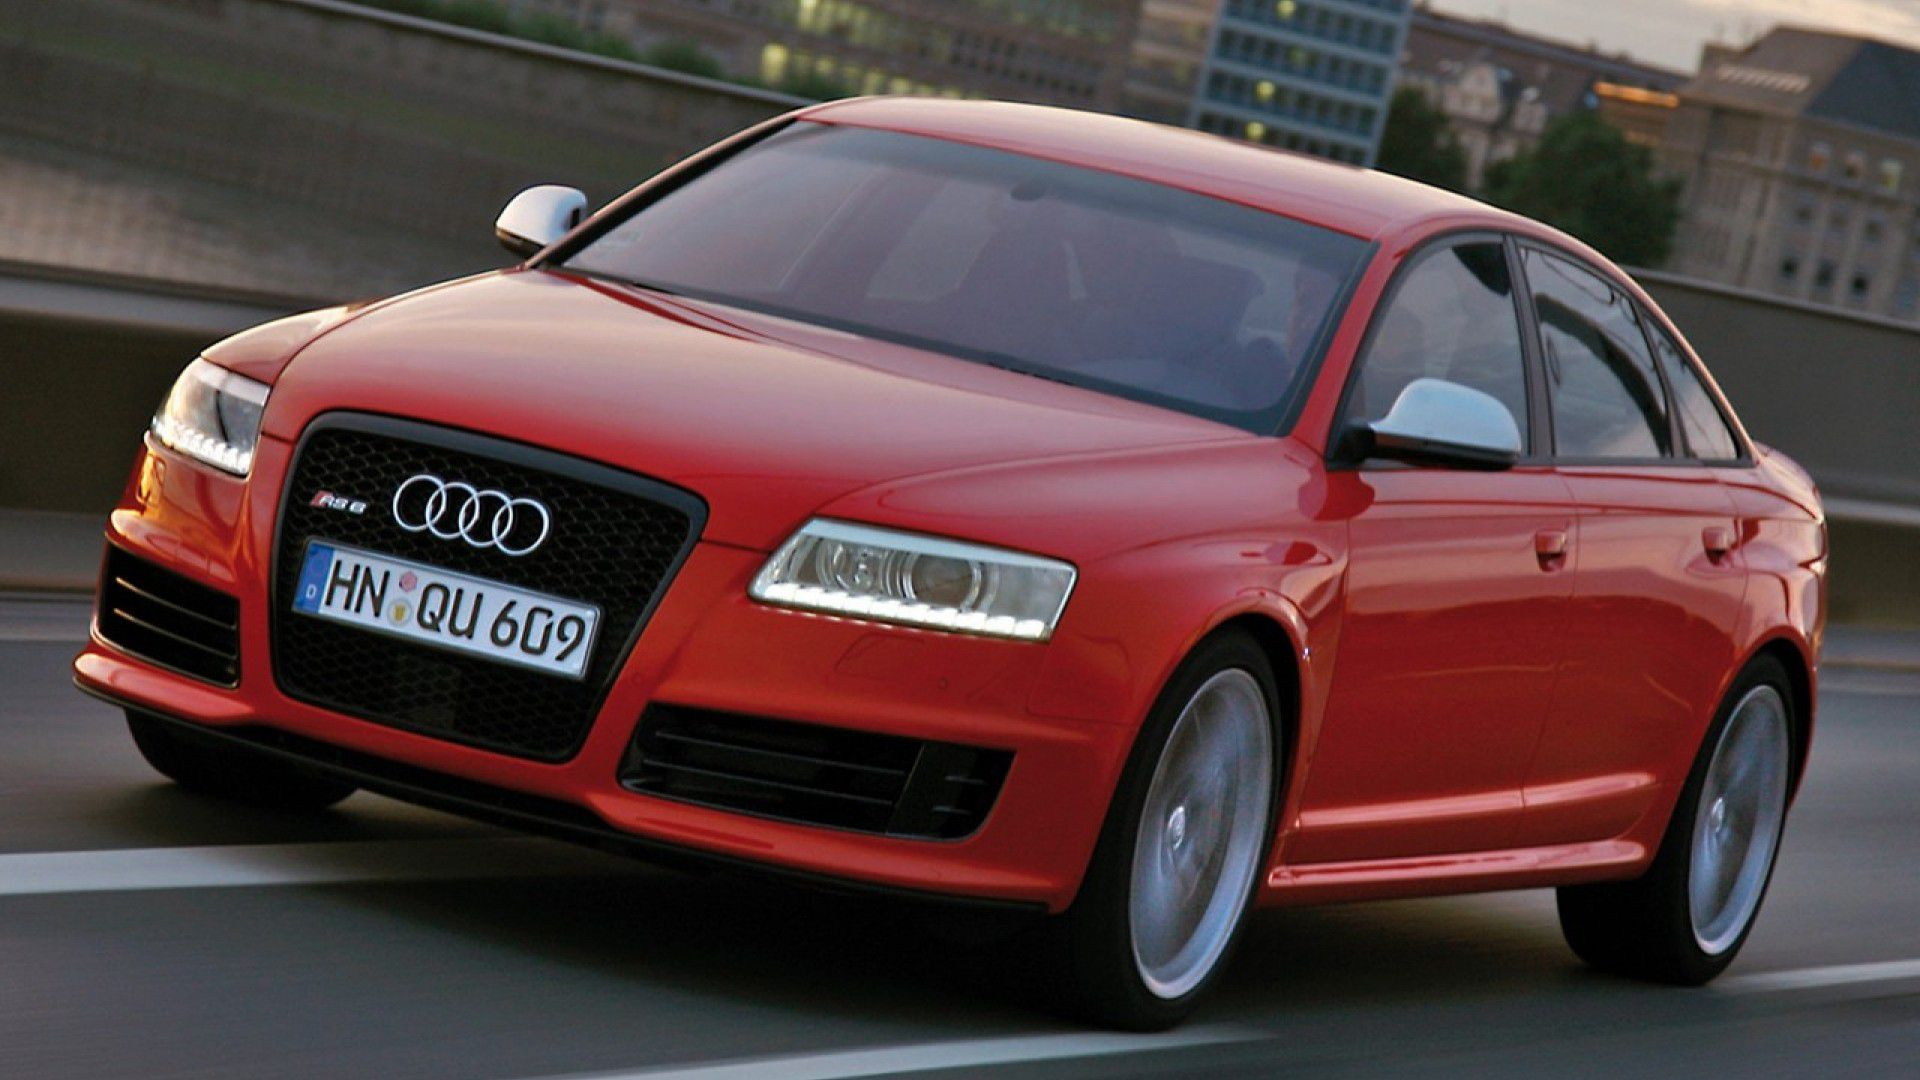 Audi RS 6 V10 (2007 to Present)